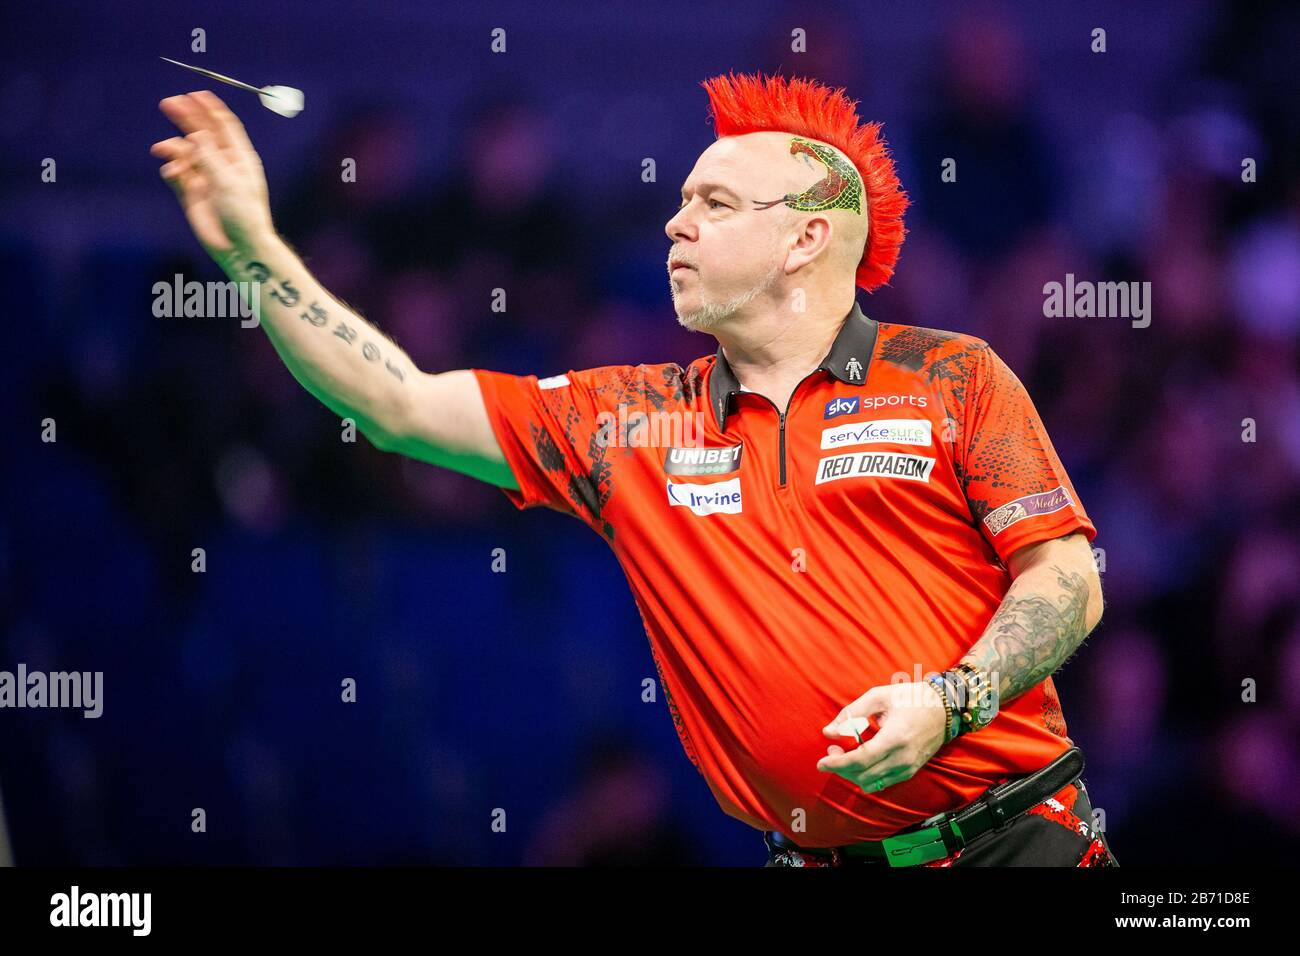 Liverpool, UK. 12th Mar, 2020. Professional Darts Corporation ...